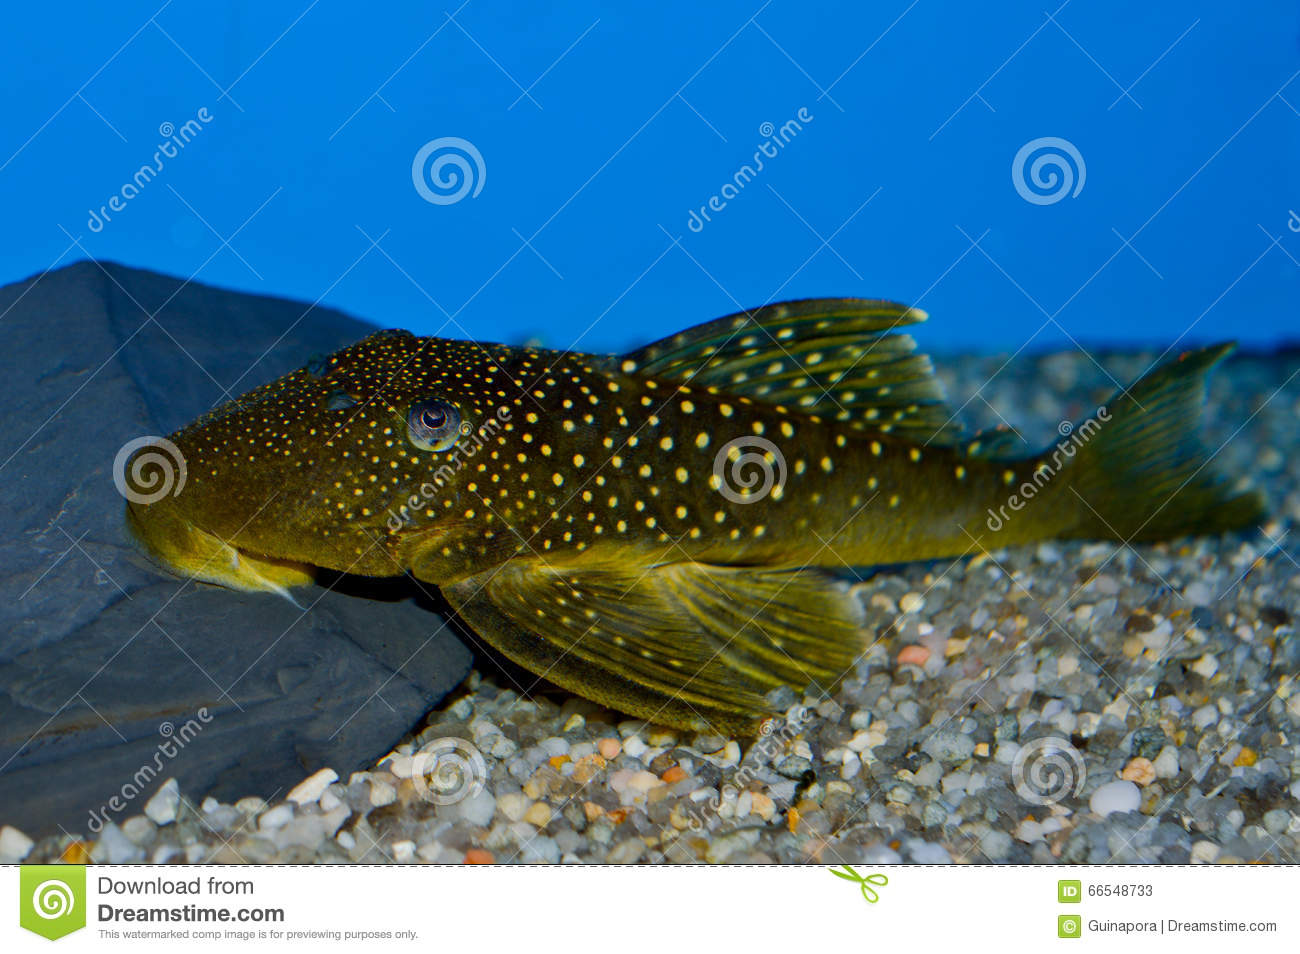 Green spotted phantom pleco fish stock image image 66548733 for Aquarium sucker fish